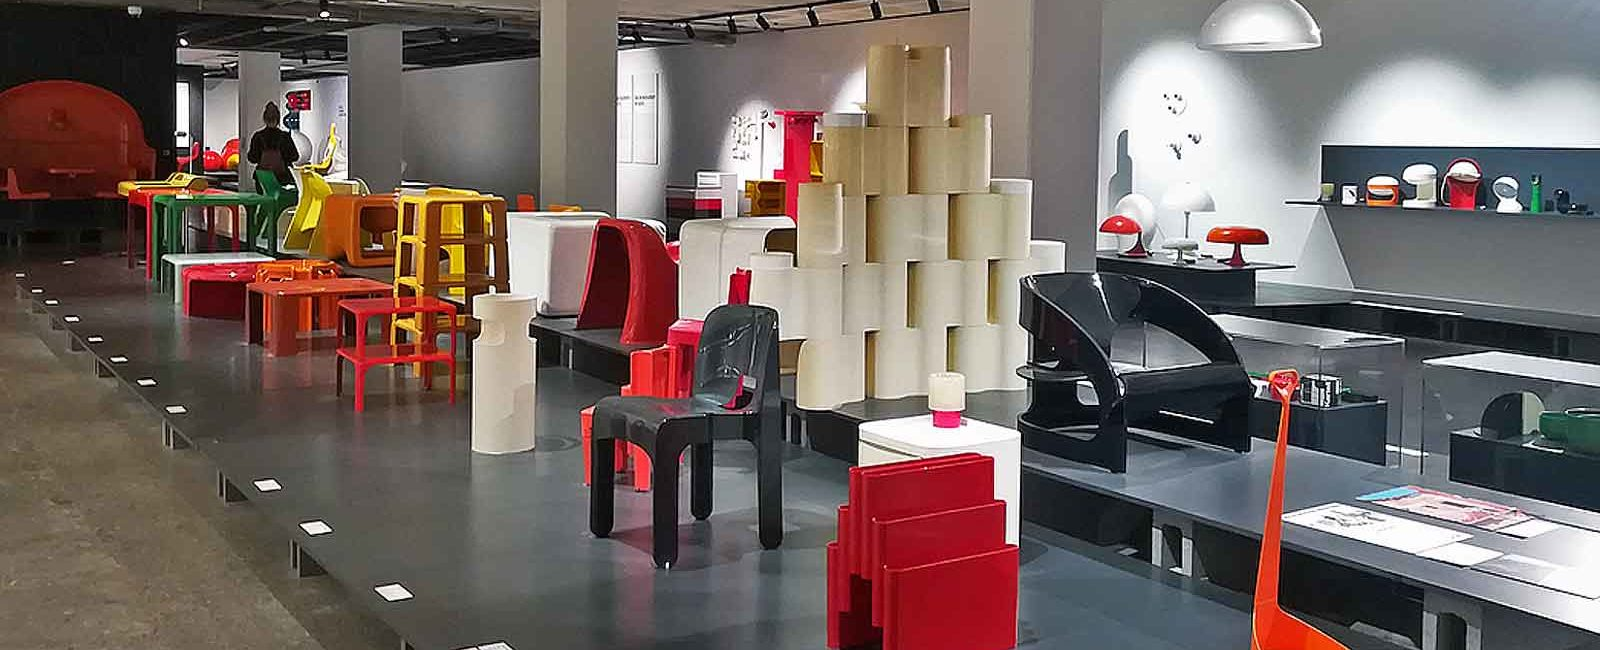 ADAM, the Brussels design museum entirely dedicated to plastic